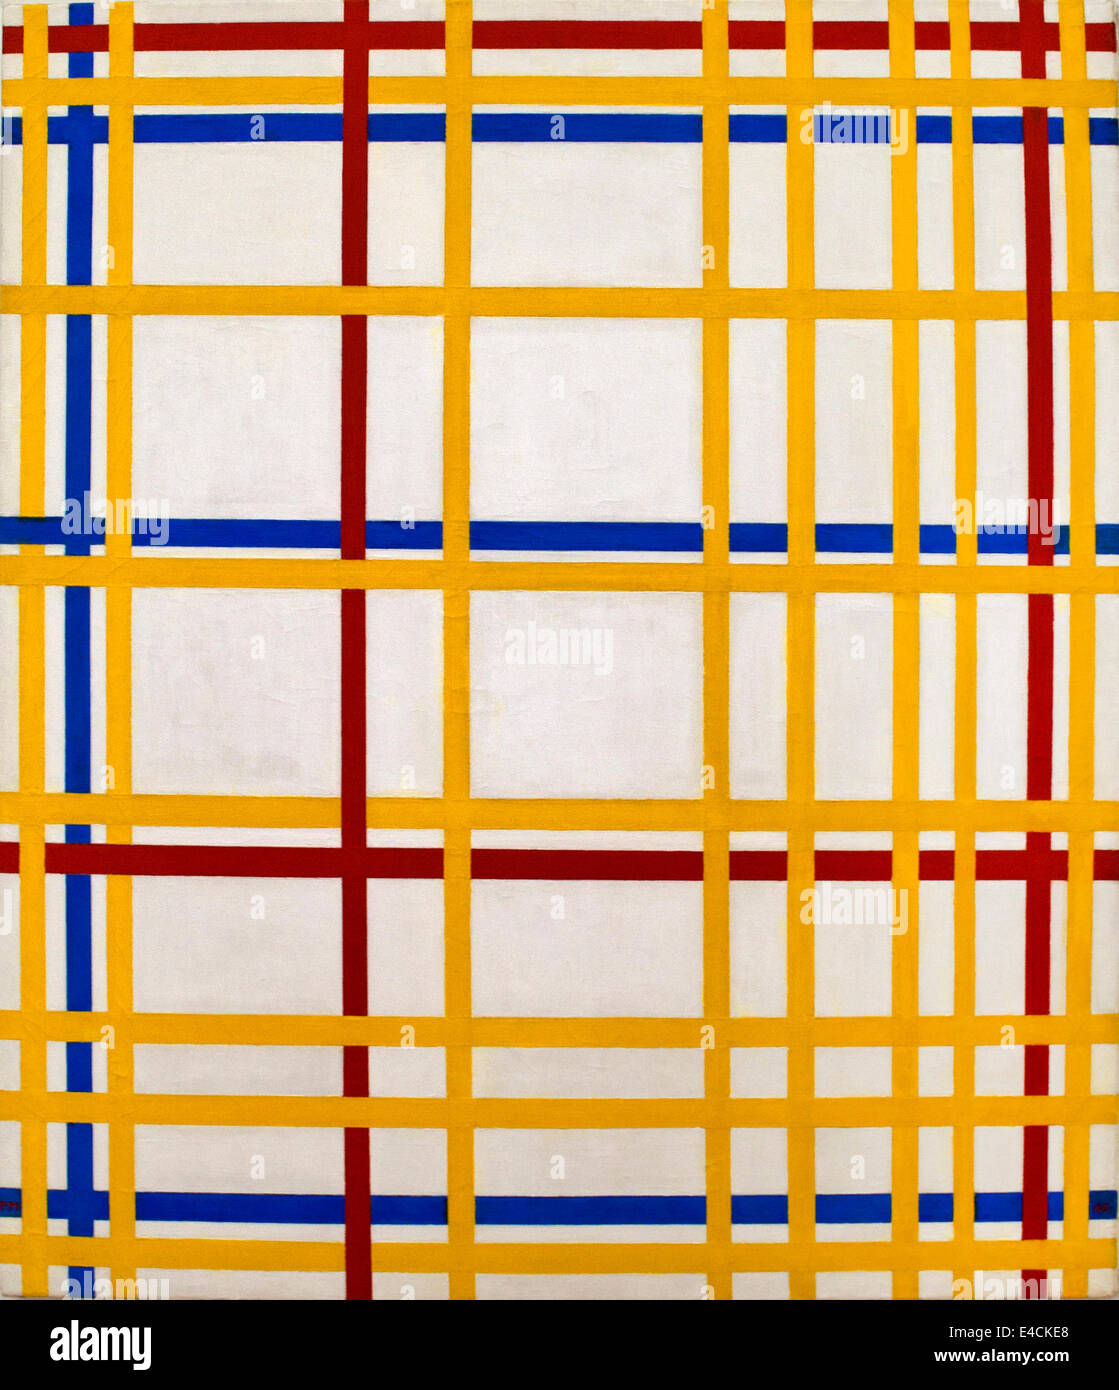 Mondrian Stock Photos & Mondrian Stock Images - Alamy